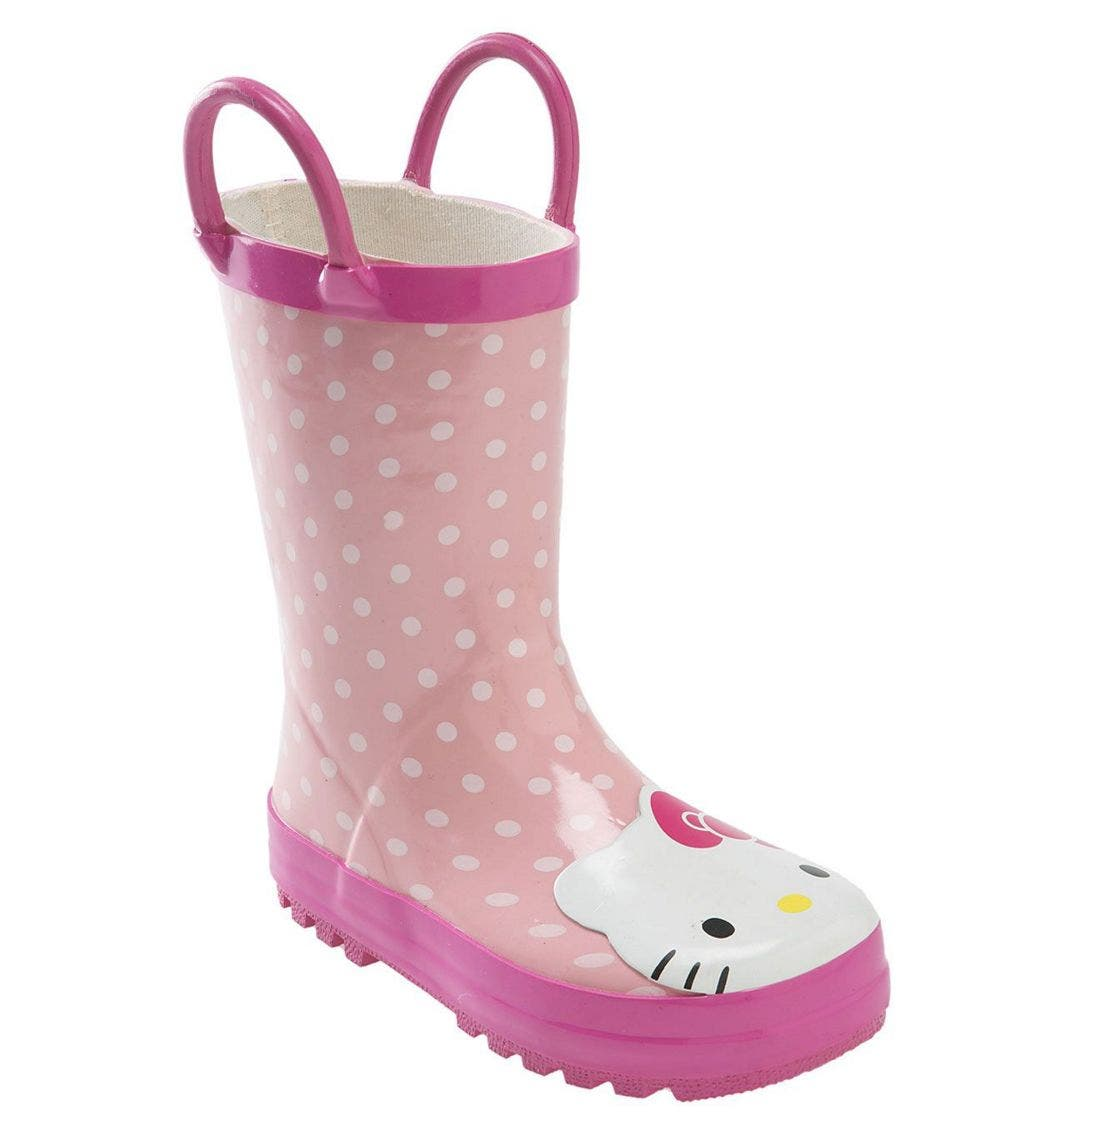 Alternate Image 1 Selected - Western Chief 'Hello Kitty®' Rain Boot (Walker, Toddler, Little Kid & Big Kid)